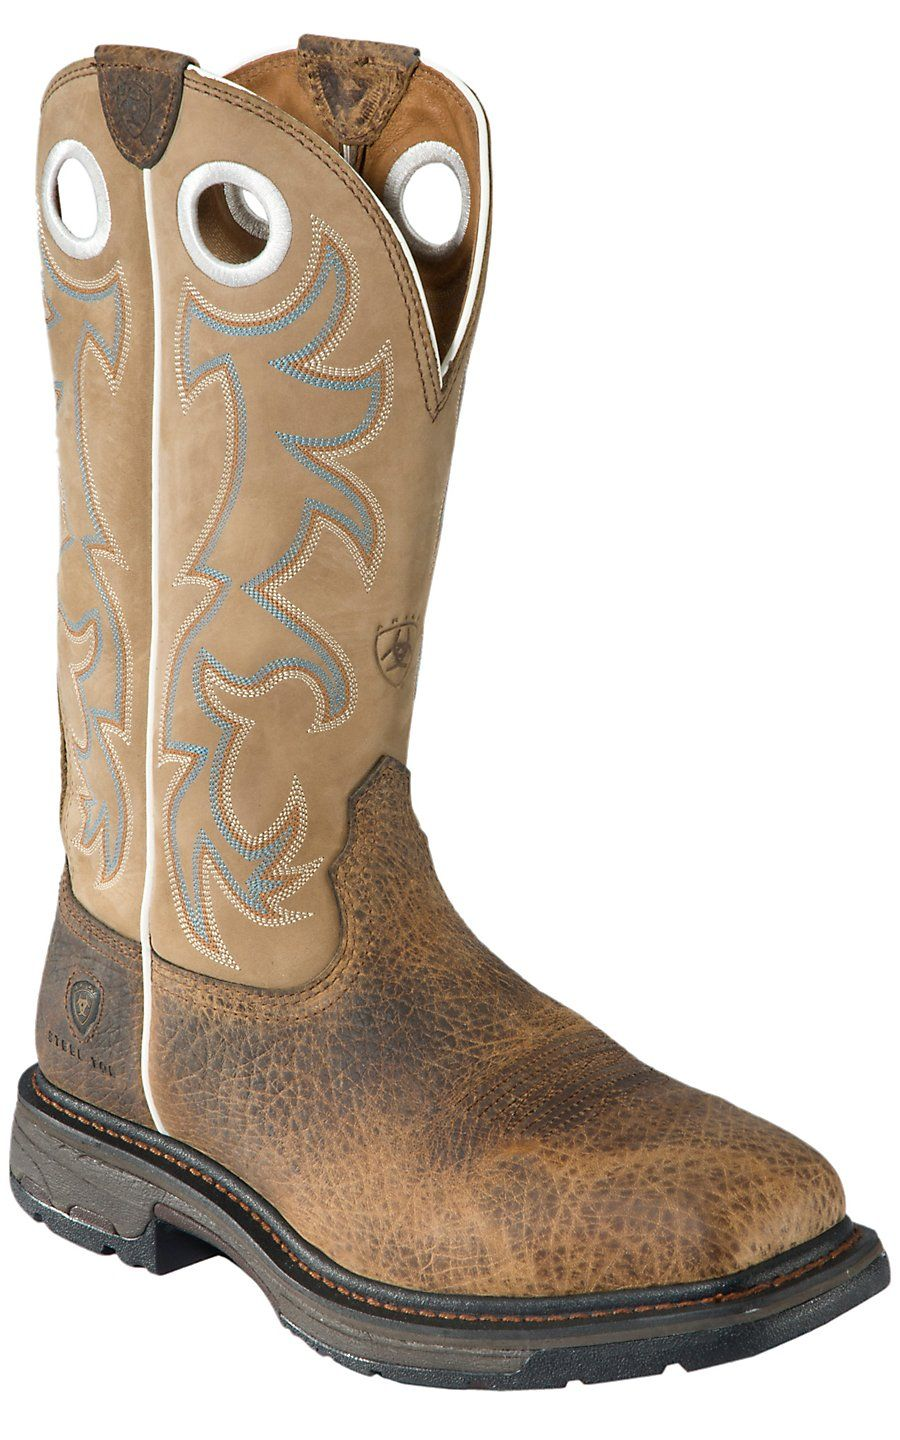 Ariat Men S Workhog Earth Brown And Tall Beige Square Steel Toe Work Boot Boots Work Boots Steel Toe Work Boots